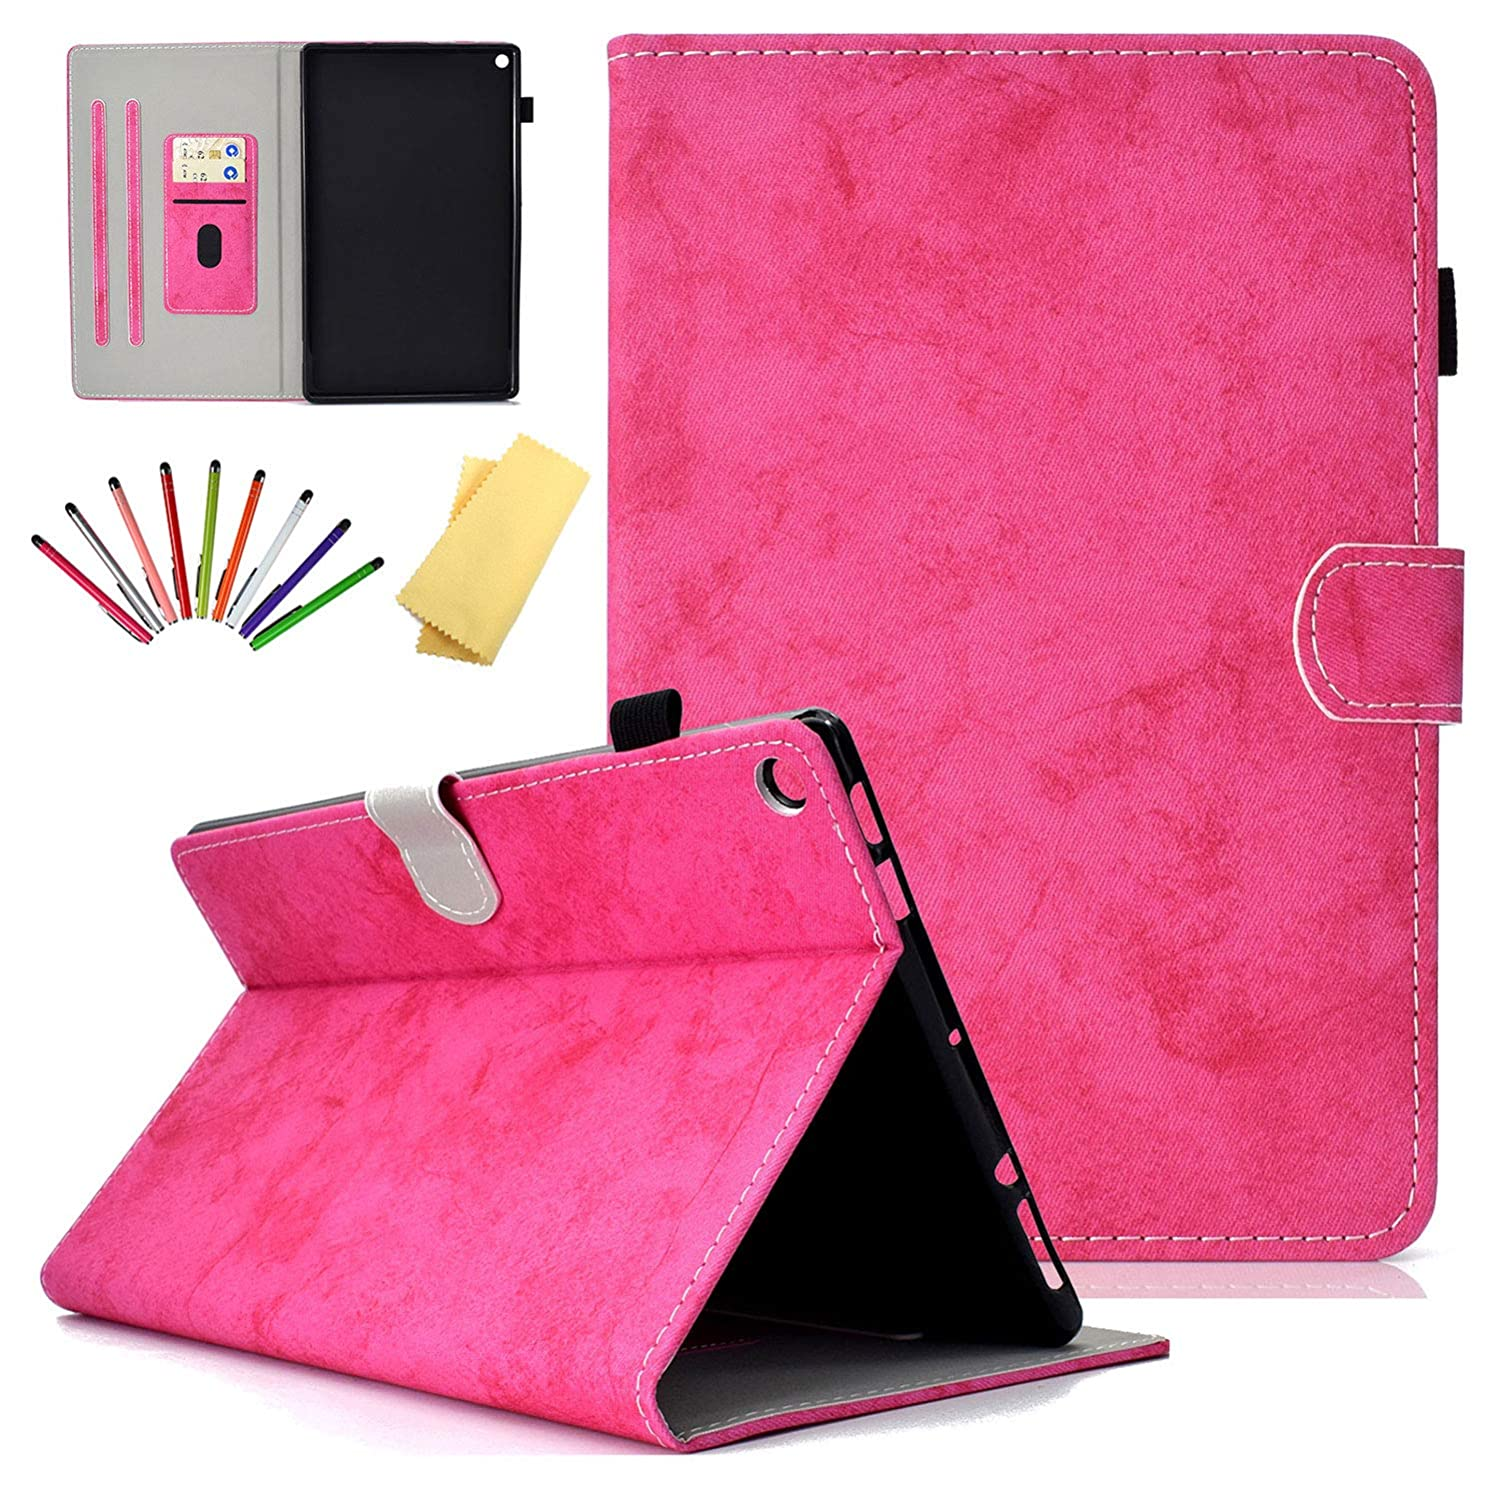 Uliking Folio Stand Case for Amazon Fire HD 10 2017/2015 (7th /5th Generation), Smart PU Leather TPU Shockproof Cover with Card Pencil Holder [Auto Sleep/Wake] for Kindle Fire HD 10.1